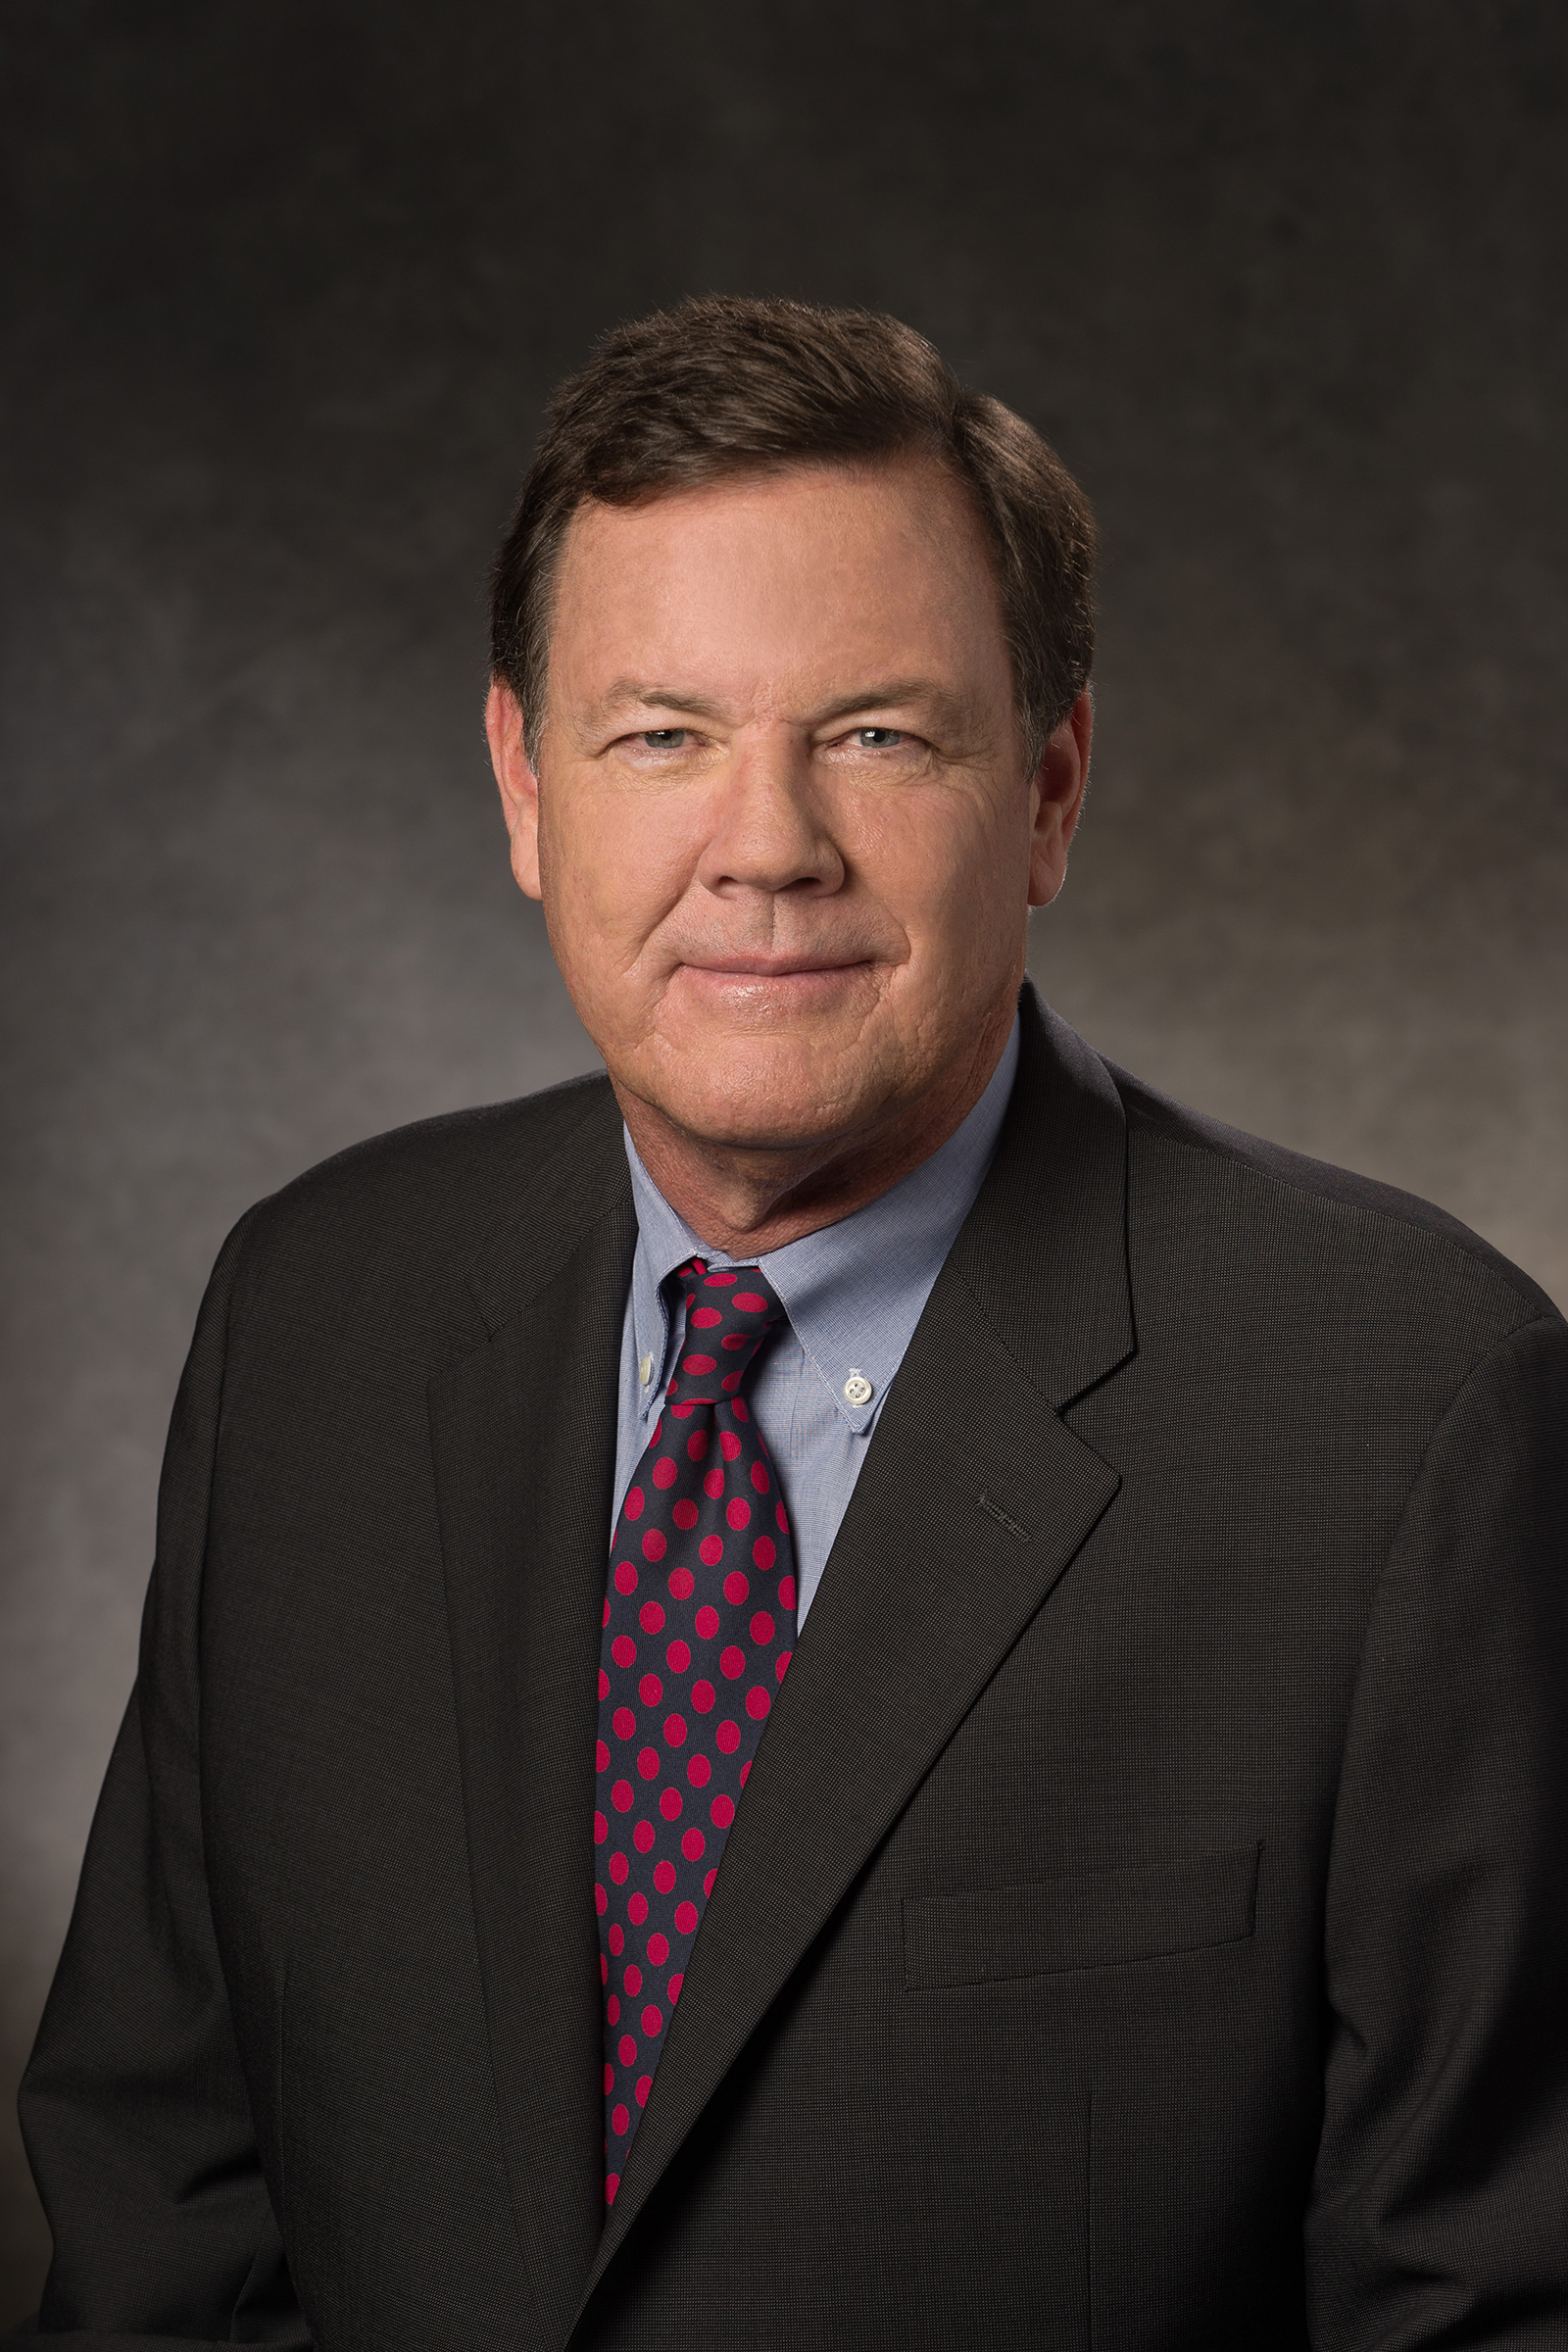 Craig R. Smith, currently Chairman & Chief Executive Officer of Owens & Minor, Inc. (NYSE:OMI), will assume the role of Executive Chairman, effective September 1, 2014. (Photo: Business Wire)